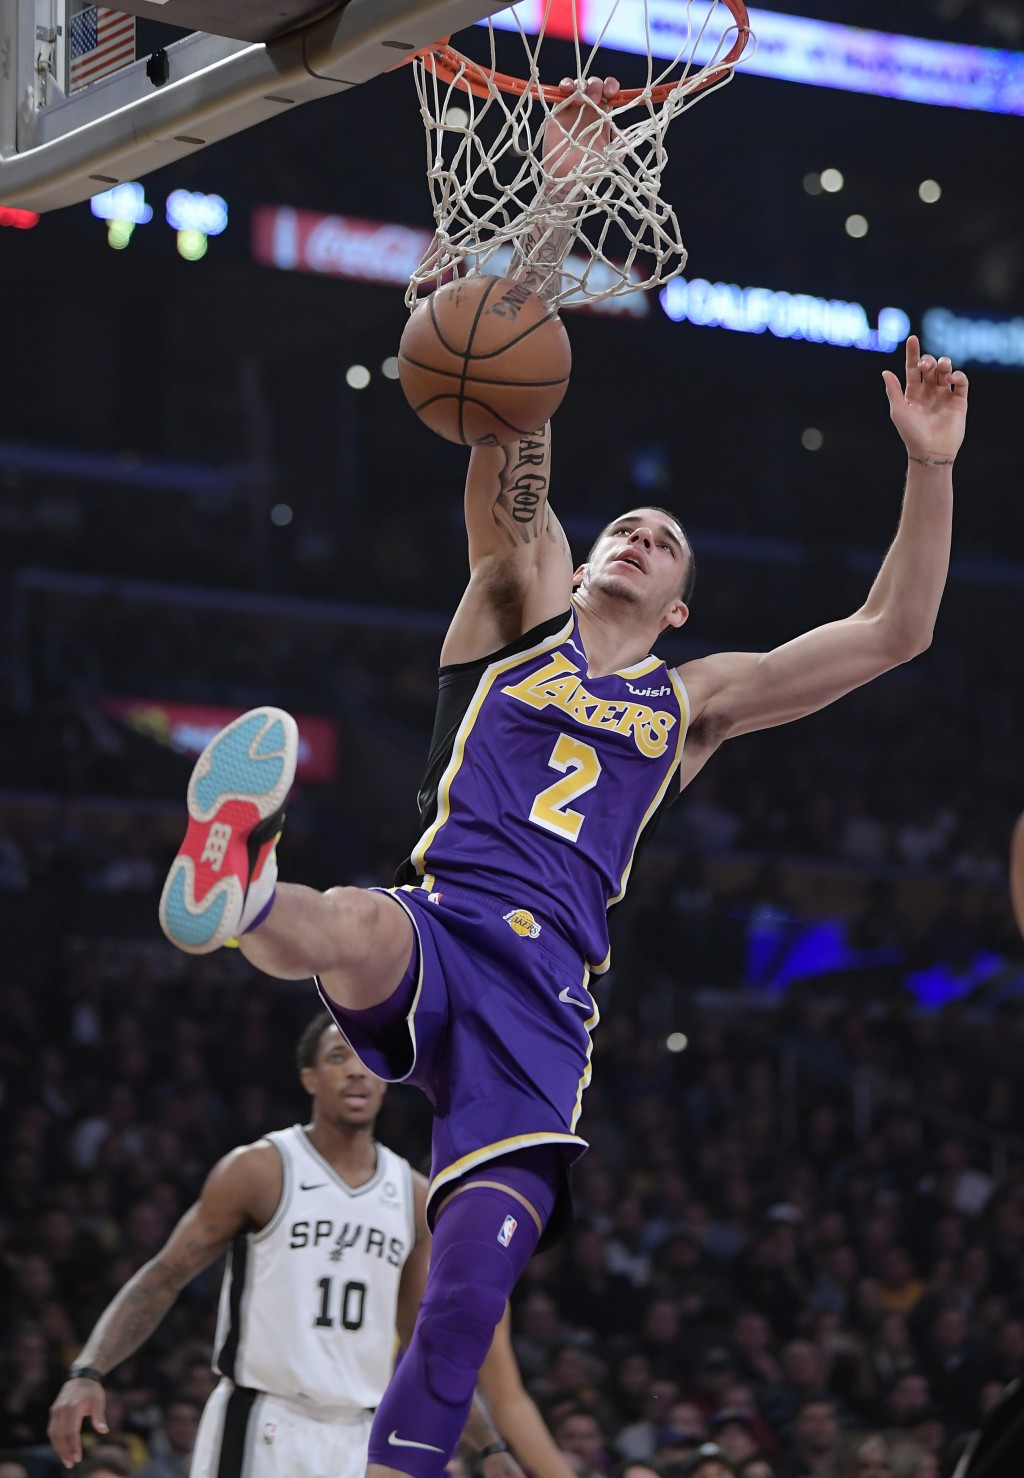 Los Angeles Lakers guard Lonzo Ball, right, dunks as San Antonio Spurs guard DeMar DeRozan watches during the first half of an NBA basketball game, We